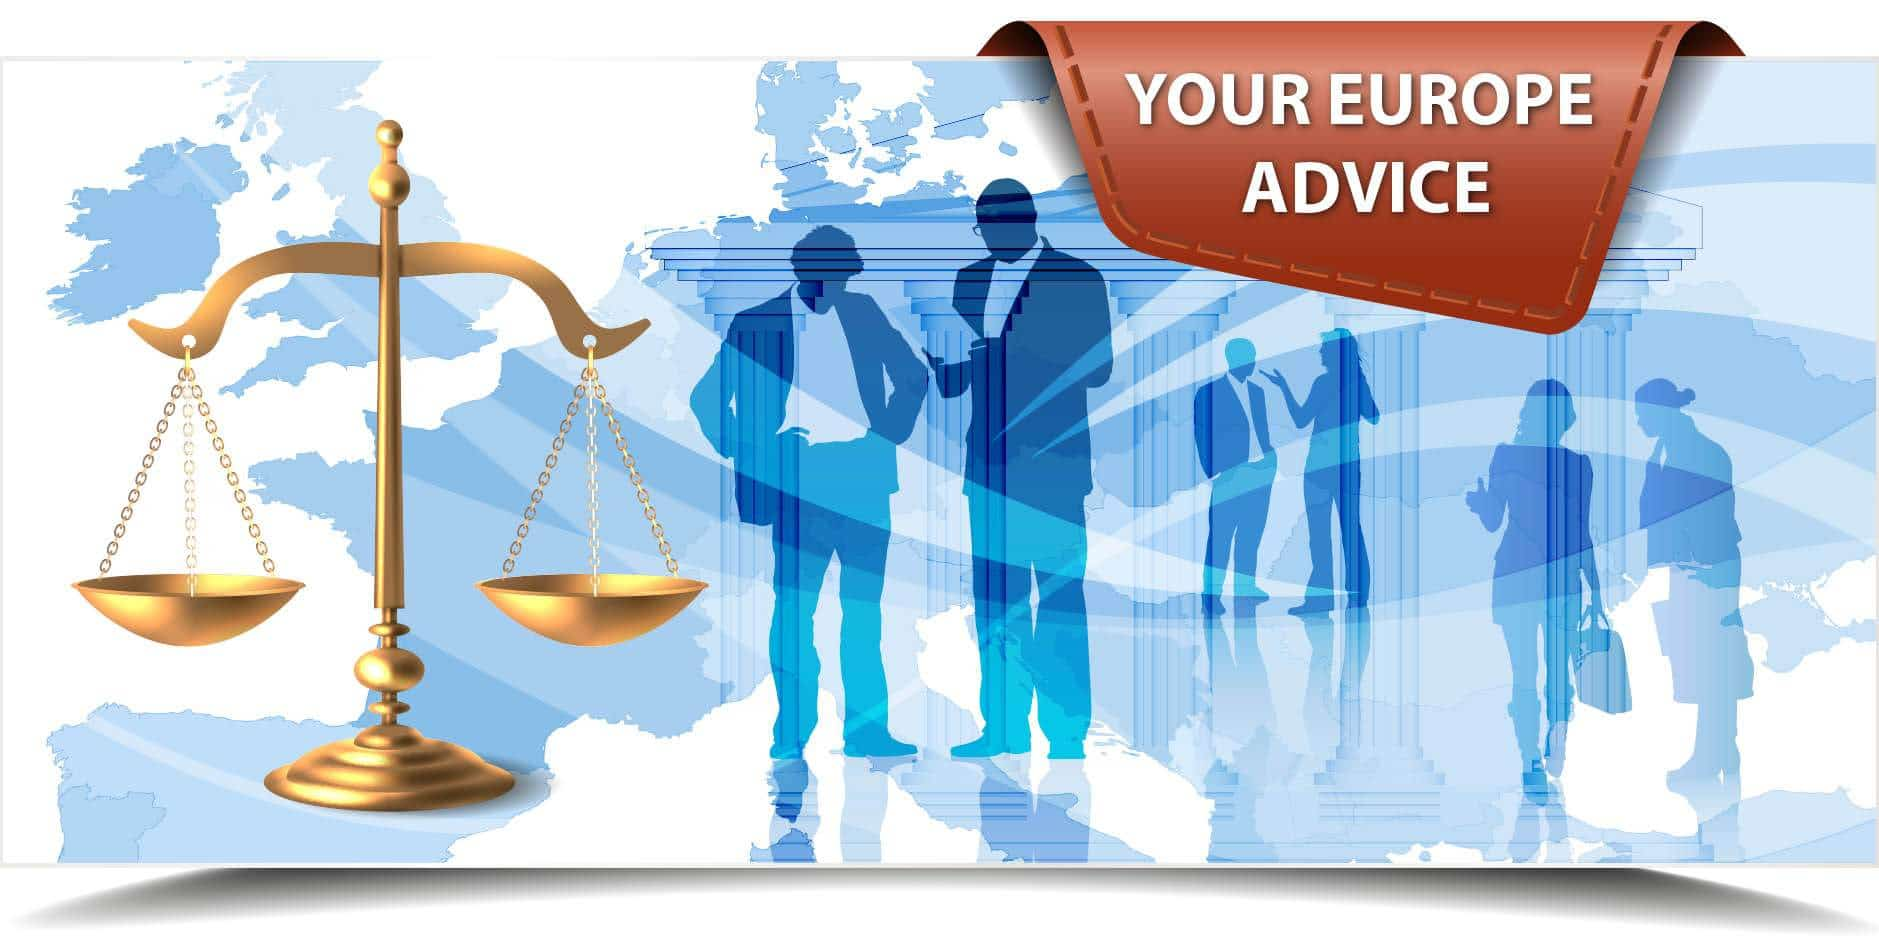 Your Europe Advice: Entry Procedures Is The Most Enquired About Legal Topic In 2018